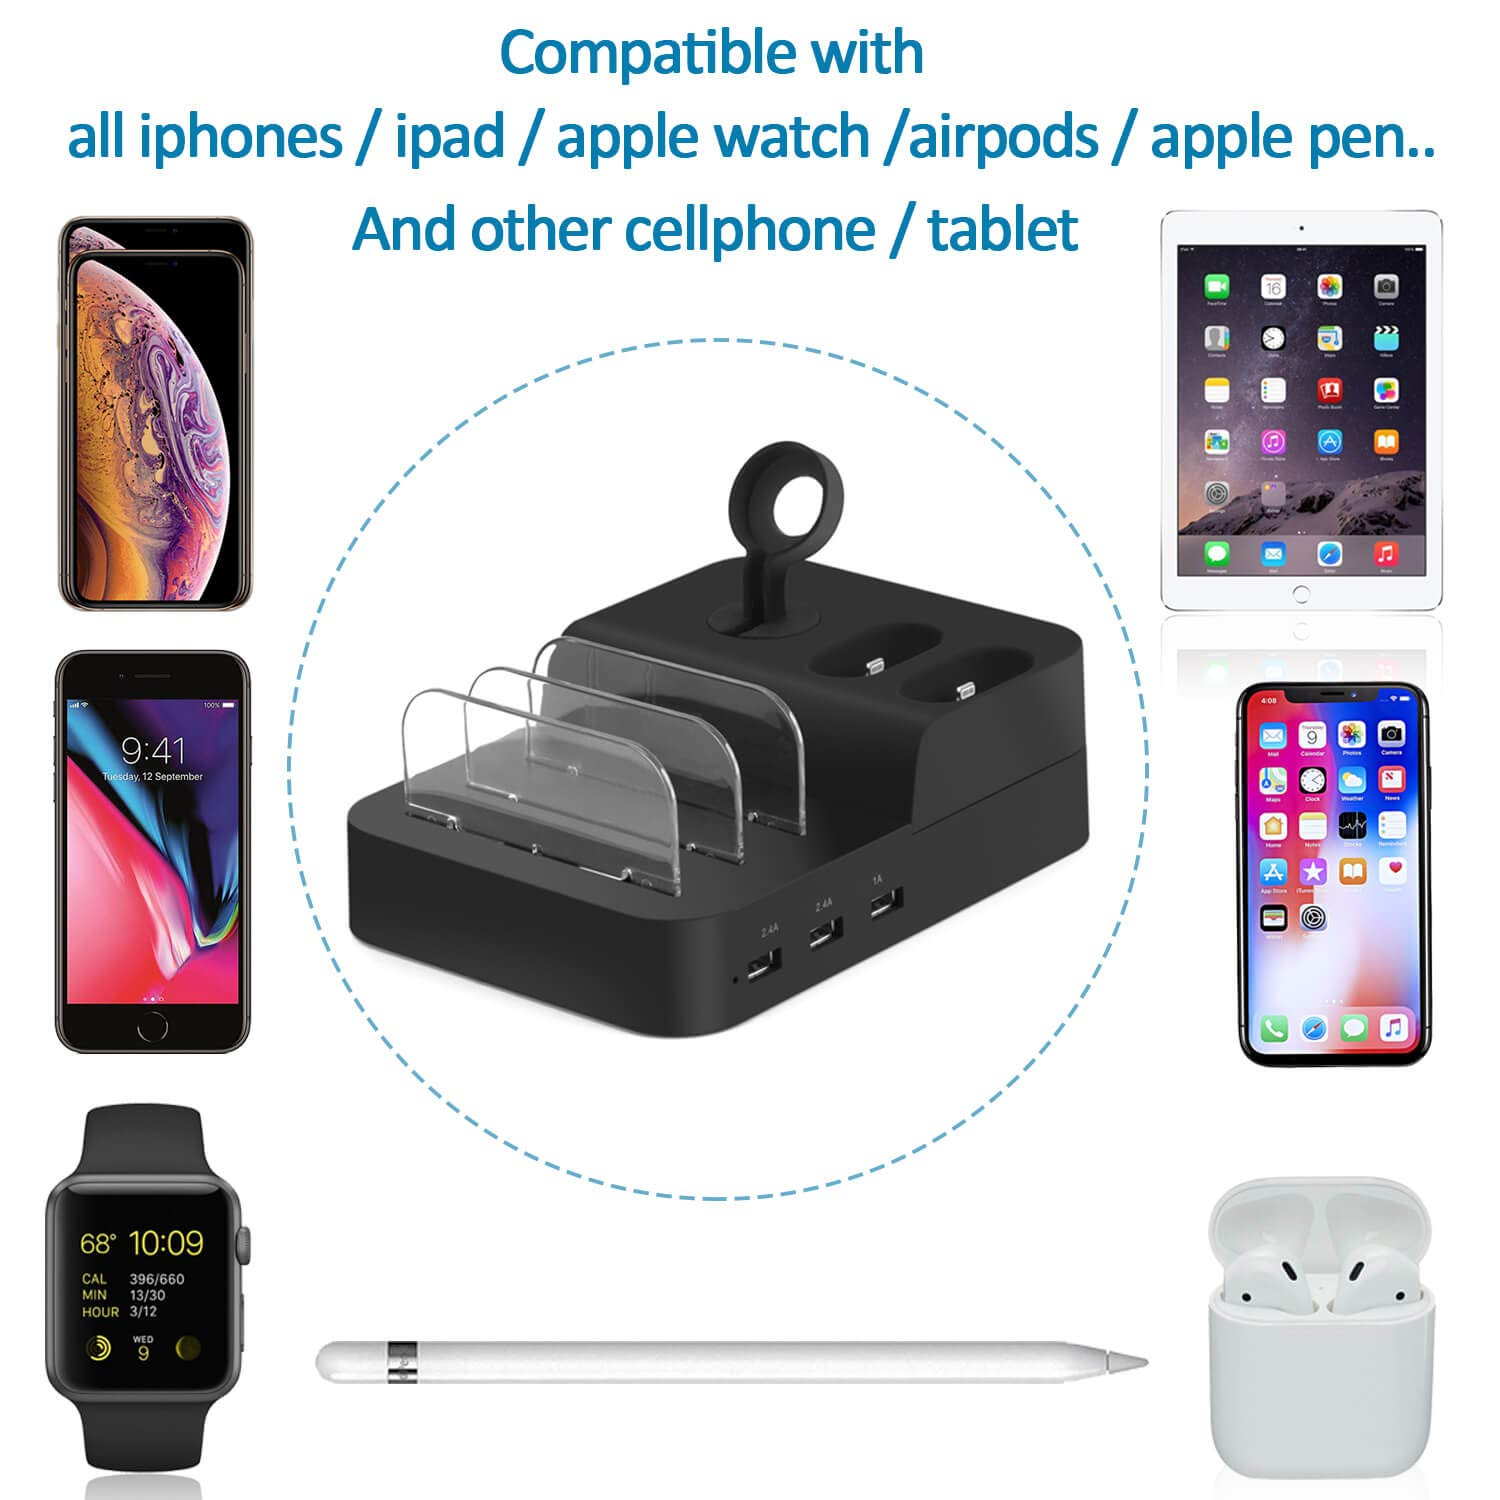 Watch and Cell Phone Airpods Charging Dock Holder, 6 Port Detachable Usb Desktop Quick Charge Station Organizer for Multiple Electronic Device ...